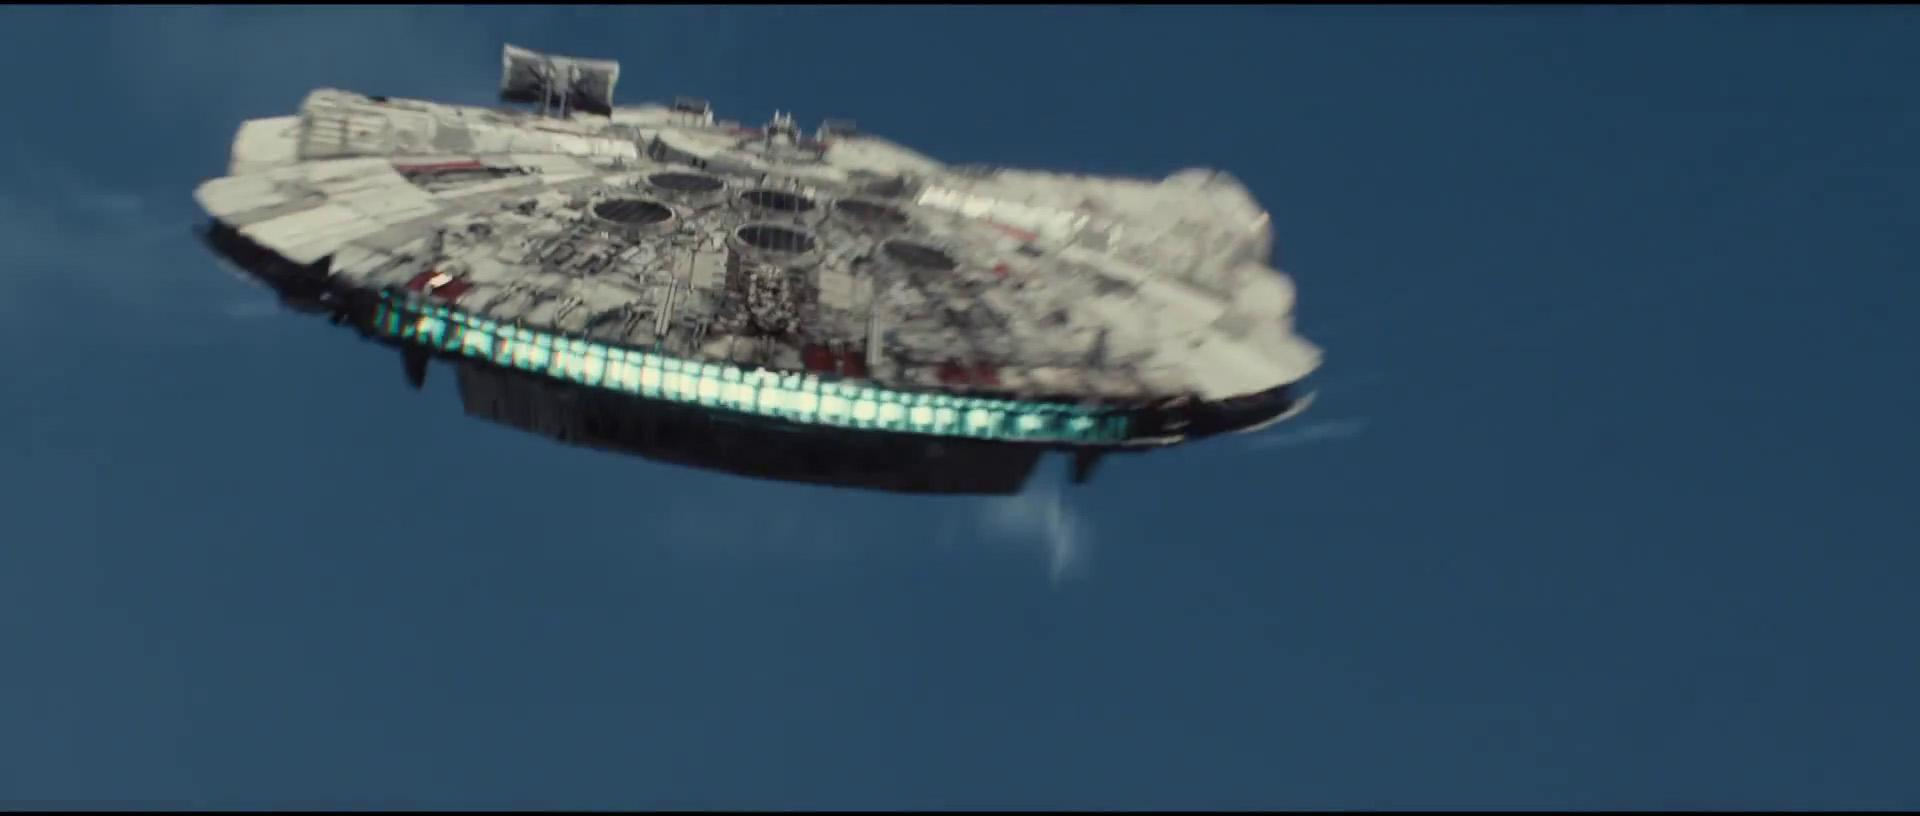 Star Wars Episode 7 - The Force Awakens (17)